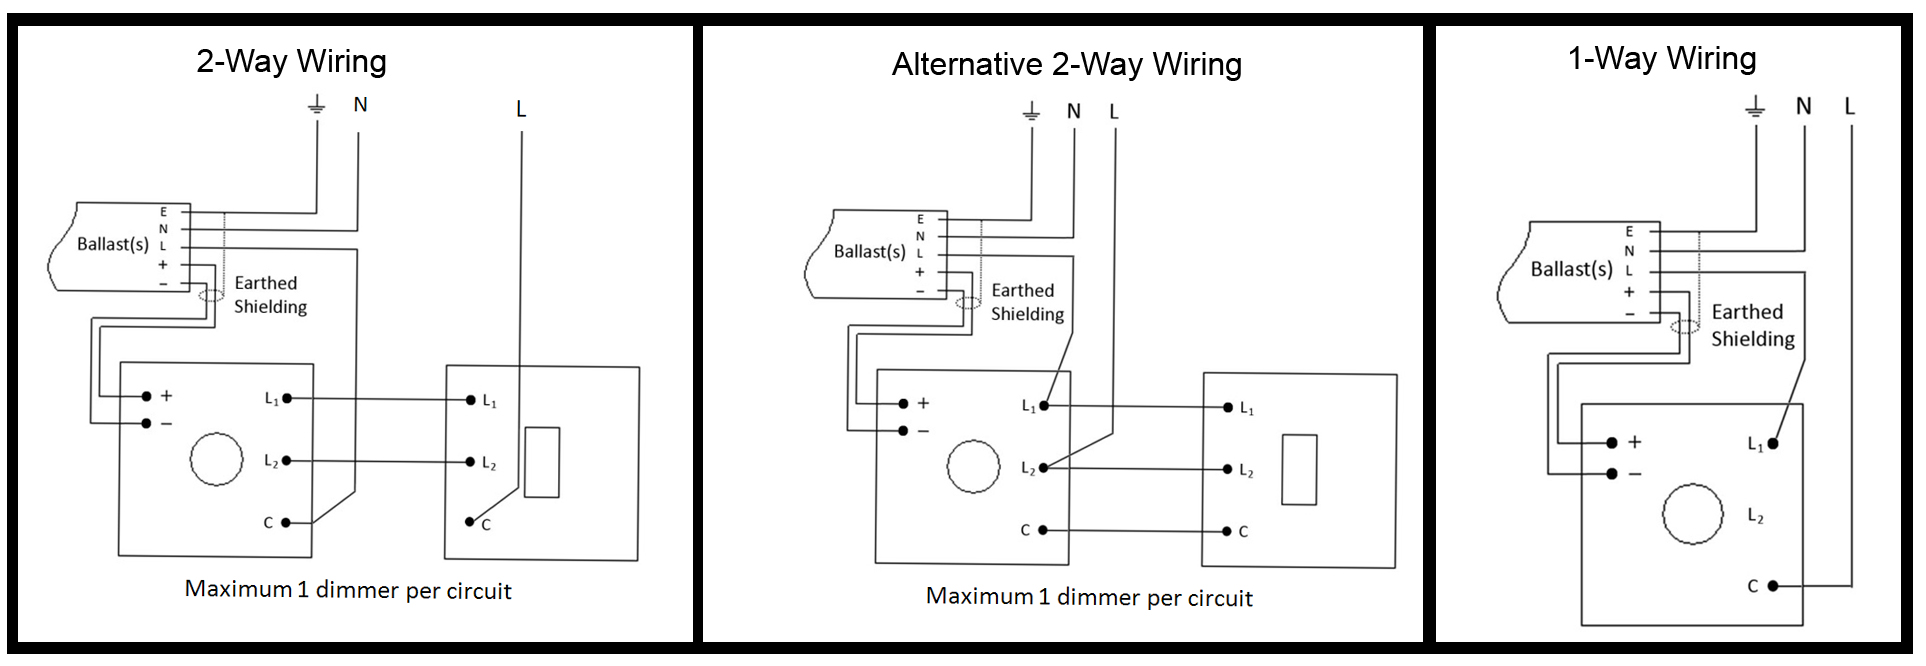 2 Way Dimmer Switch Wiring Diagram from www.varilight.co.uk